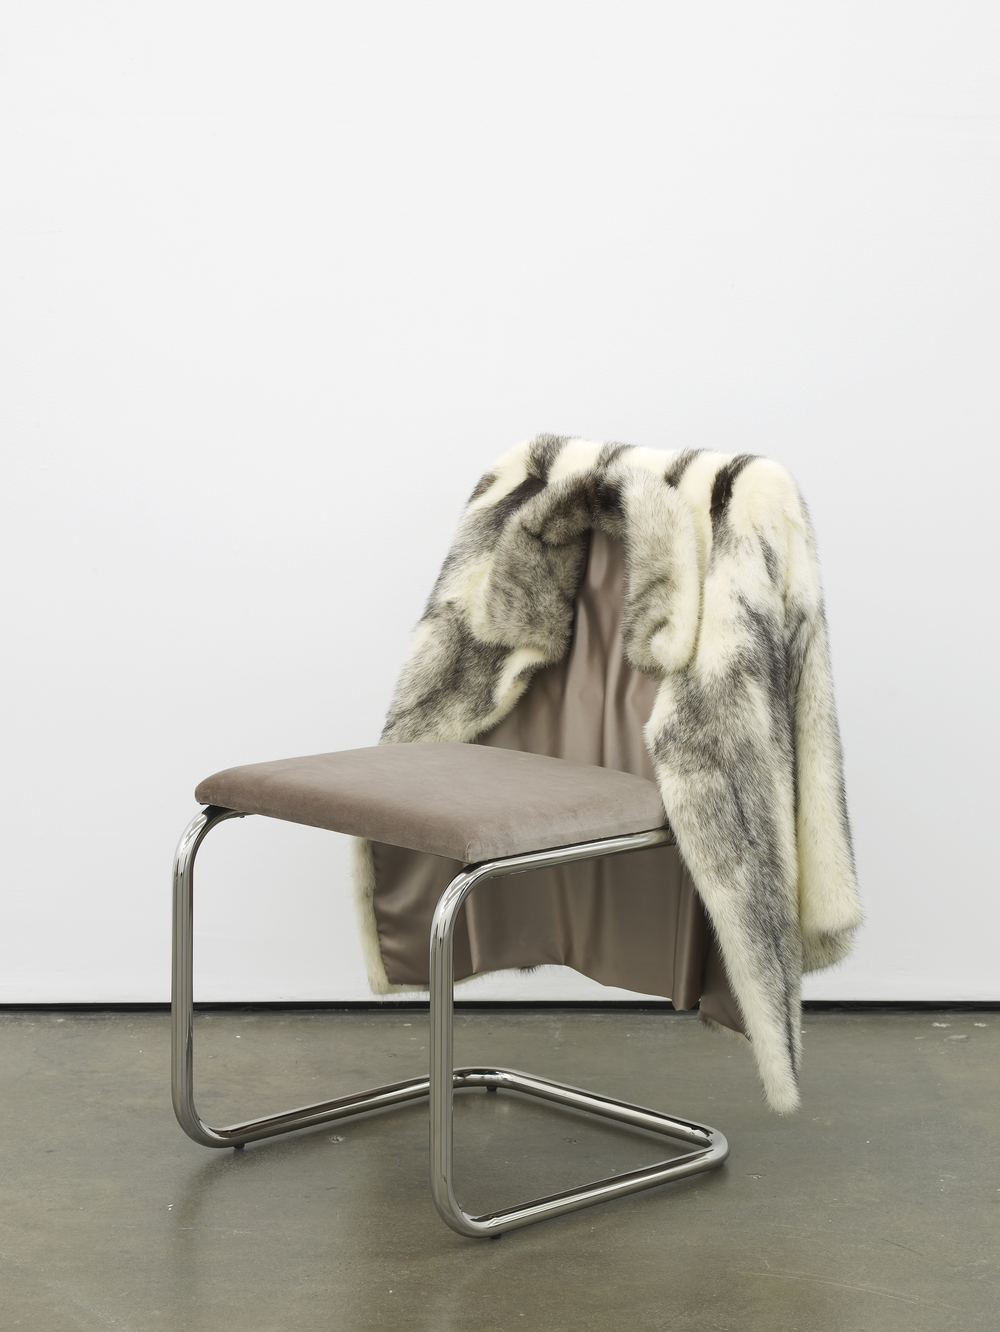 Untitled Chair - CBM-0 2015 Vintage fur, steel tubing, upholstery, silk and velvet 85 x 65 x 60 cm / 33.4 x 25.5 x 23.6 in